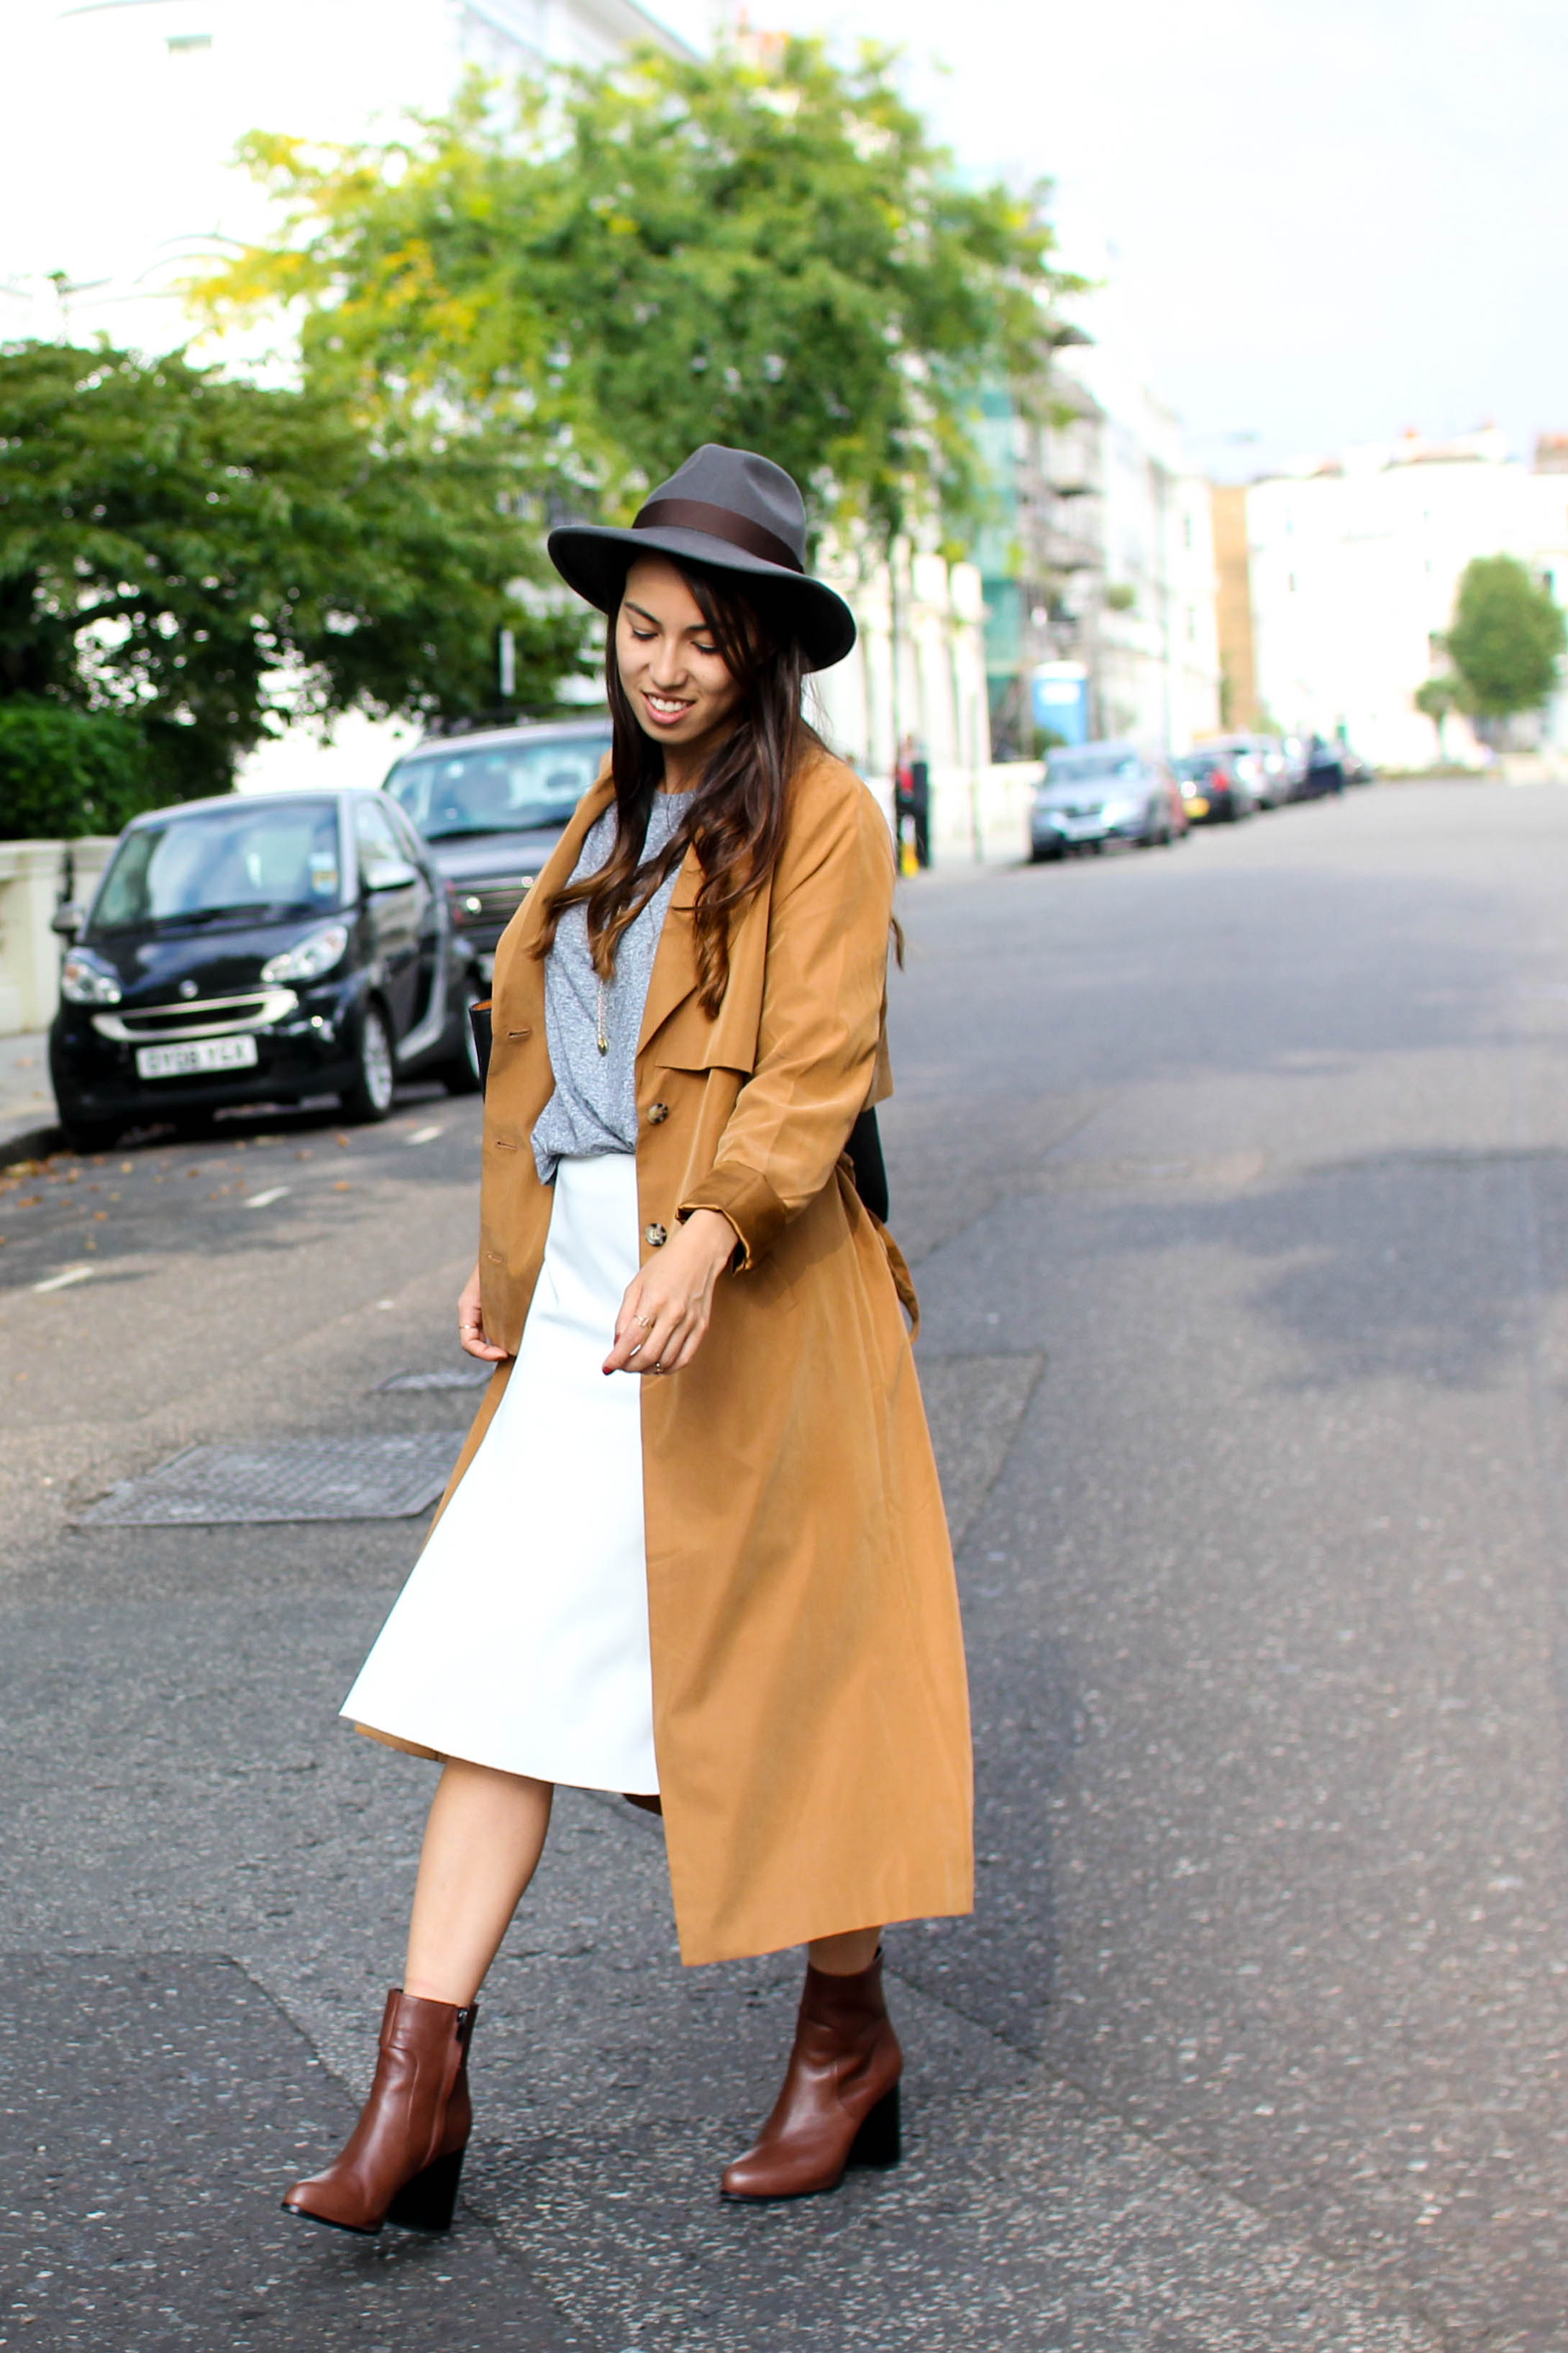 coat: Monki, skirt: Zara, shirt and rings: Topshop, boots and necklace: &otherstories, hat and bag: Brick Lane markets